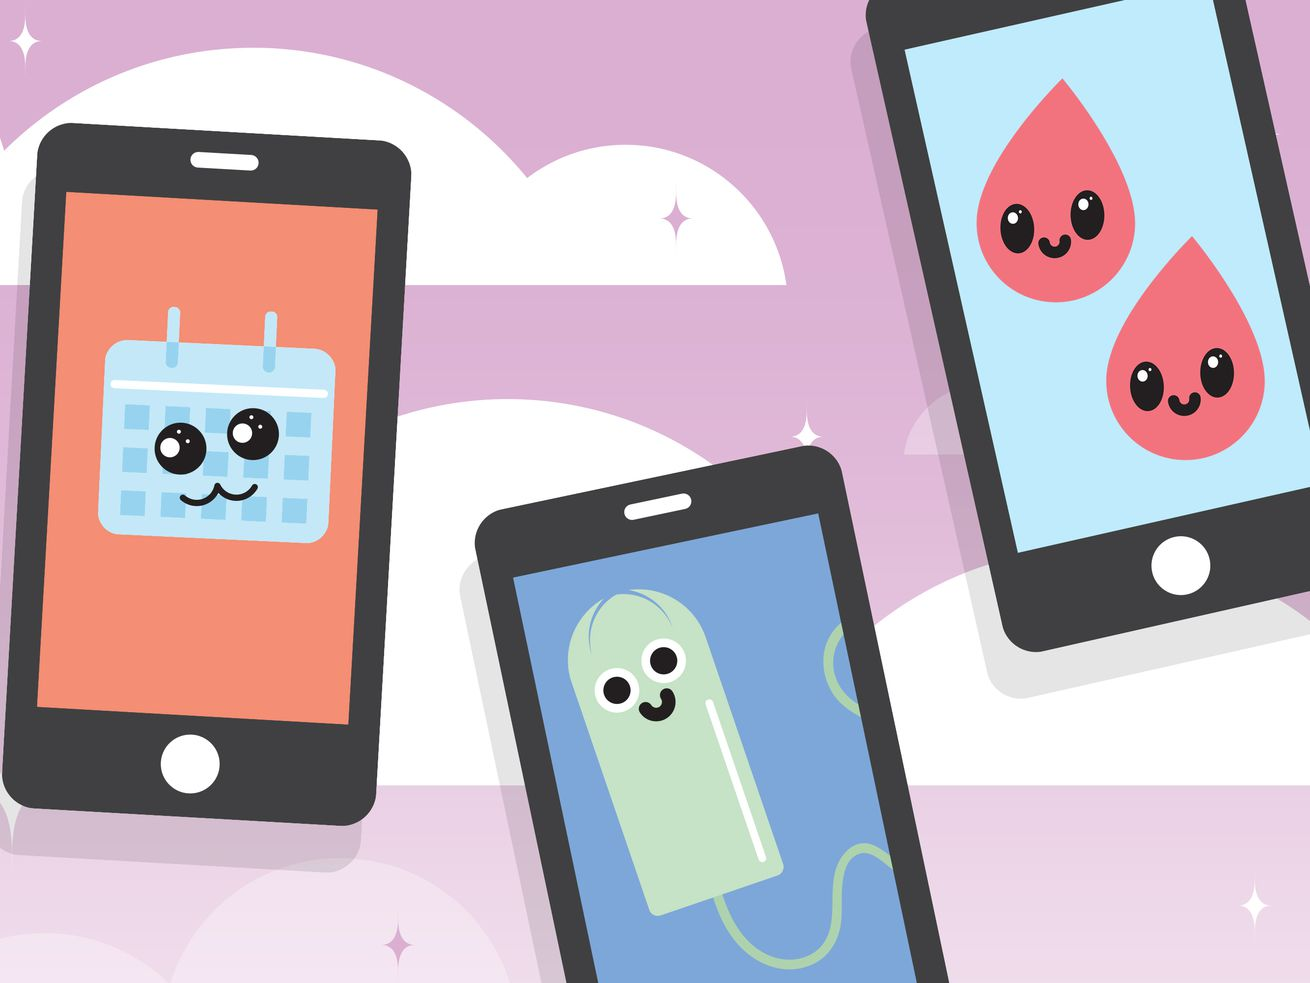 Period tracker apps put a happy, not-so-useful face on menstruation.